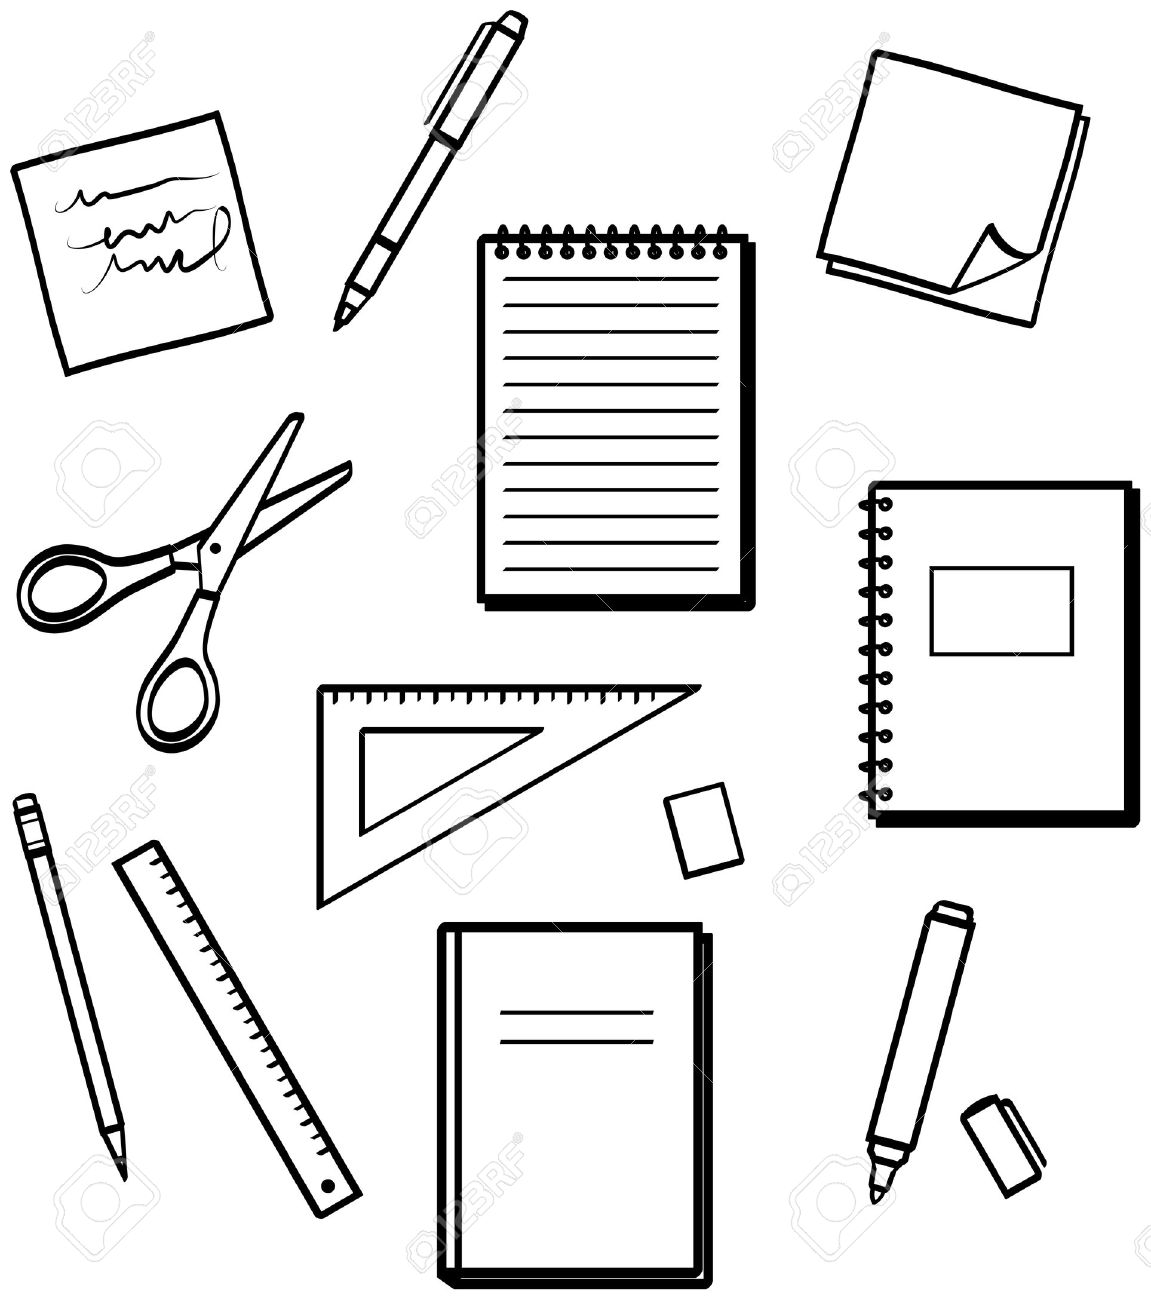 Free School Supplies Clipart Gclipart